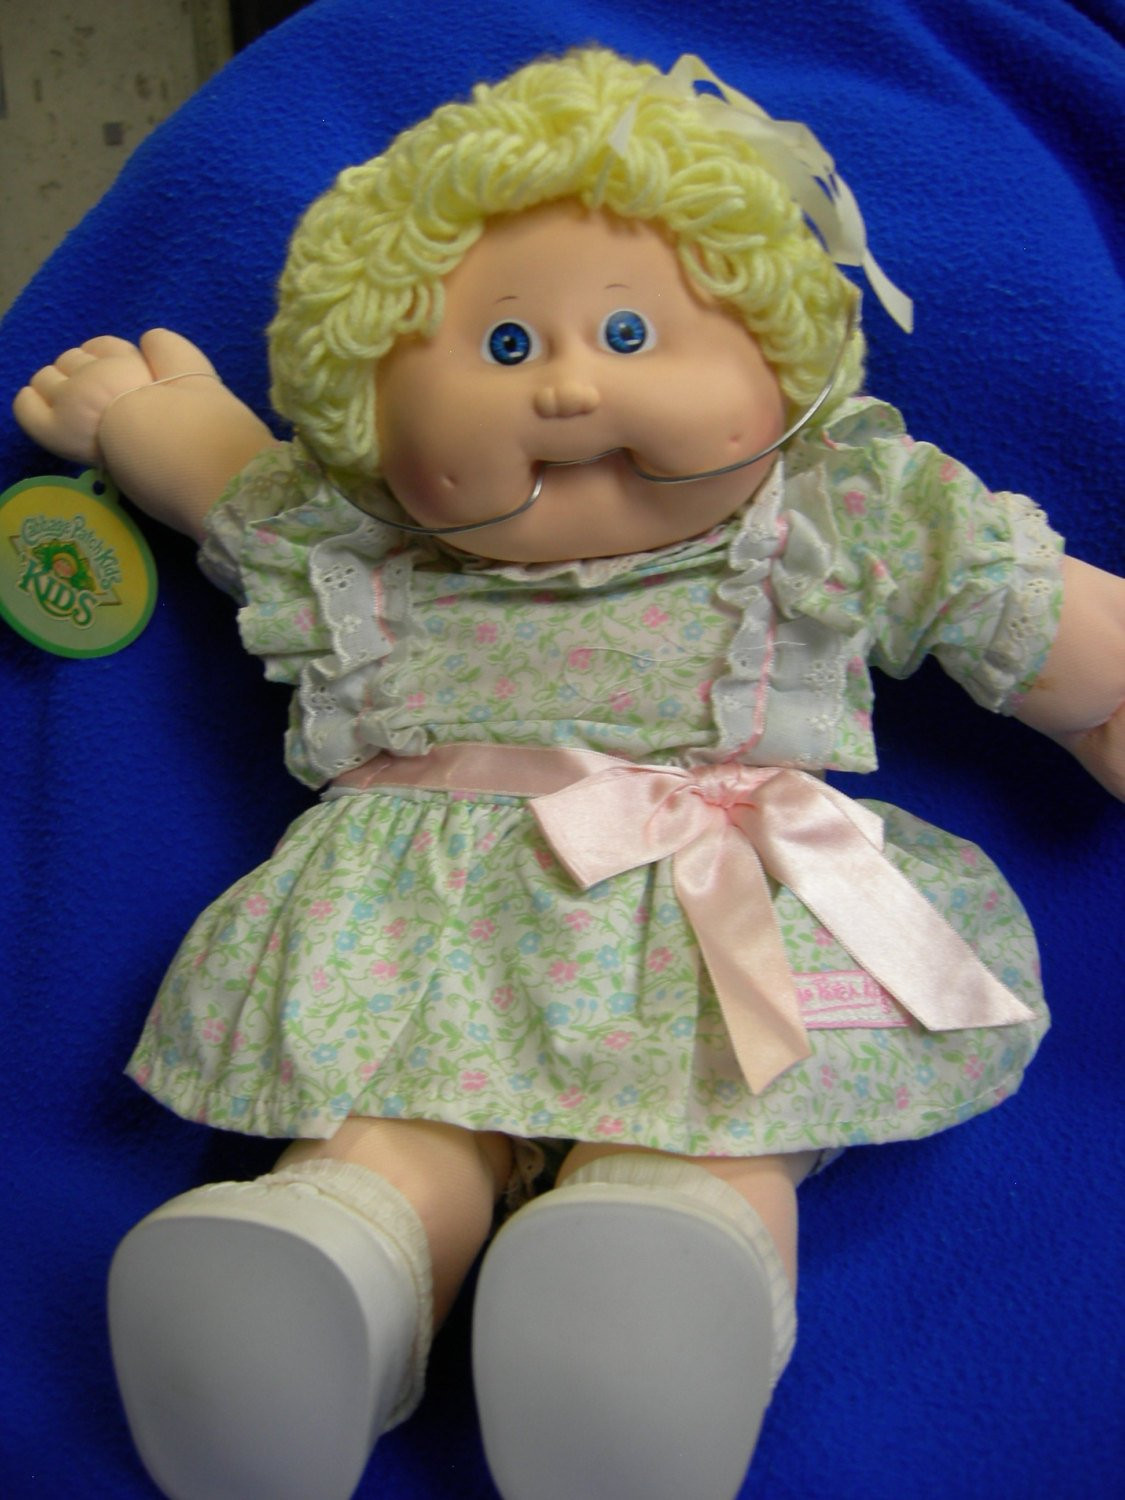 Cabbage Patch Doll Value Luxury Cabbage Patch Dolls Vintagedownload Free software Programs Of Contemporary 40 Pictures Cabbage Patch Doll Value